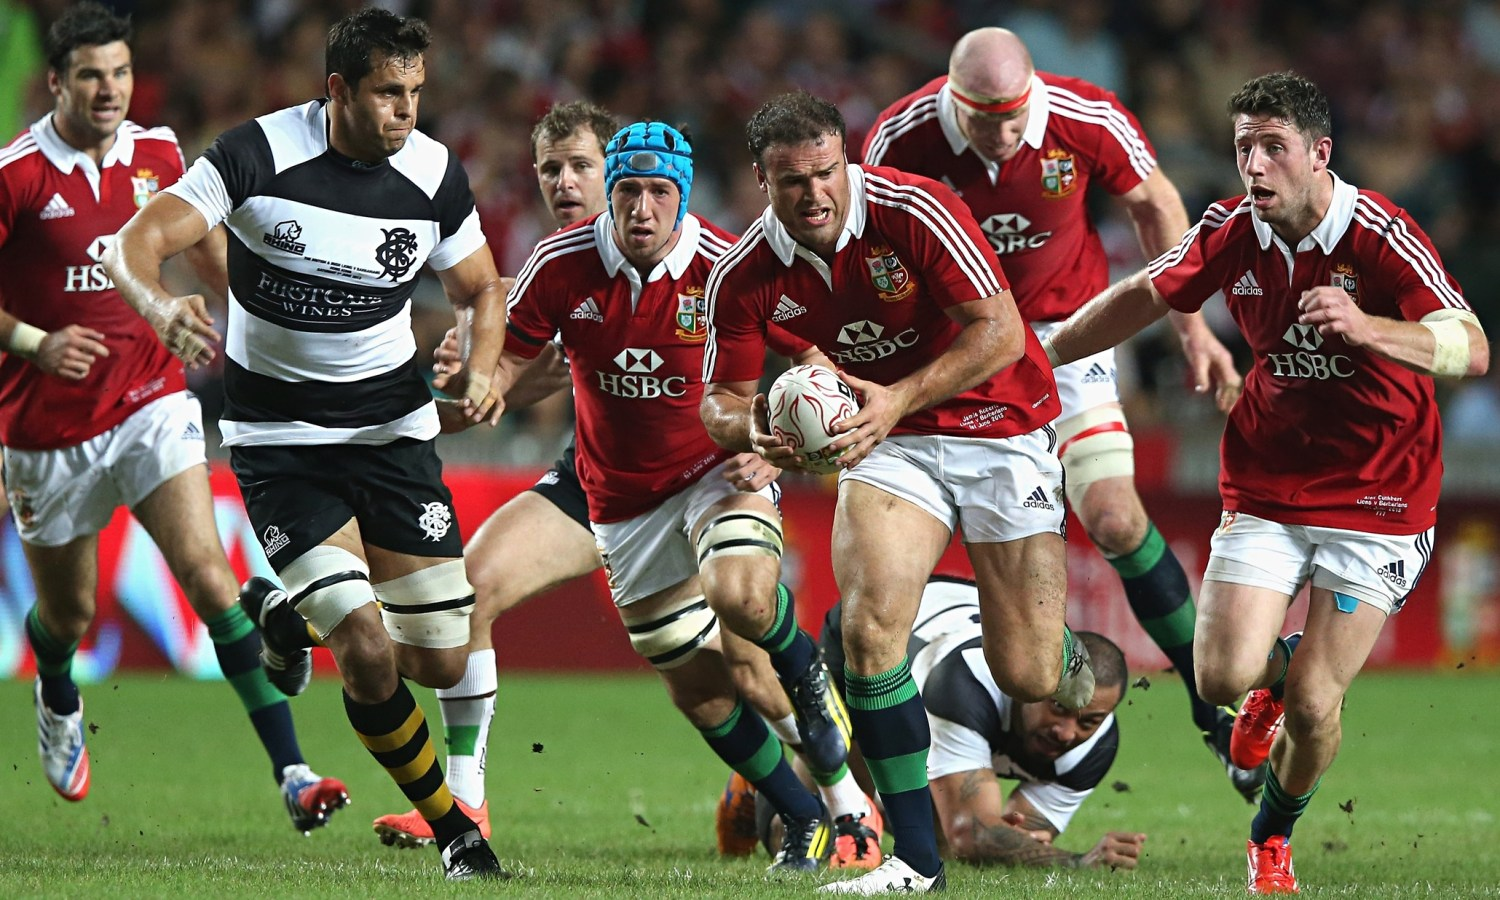 The British & Irish Lions played the Barbarians at Hong Kong Stadium en route to Australia in 2013